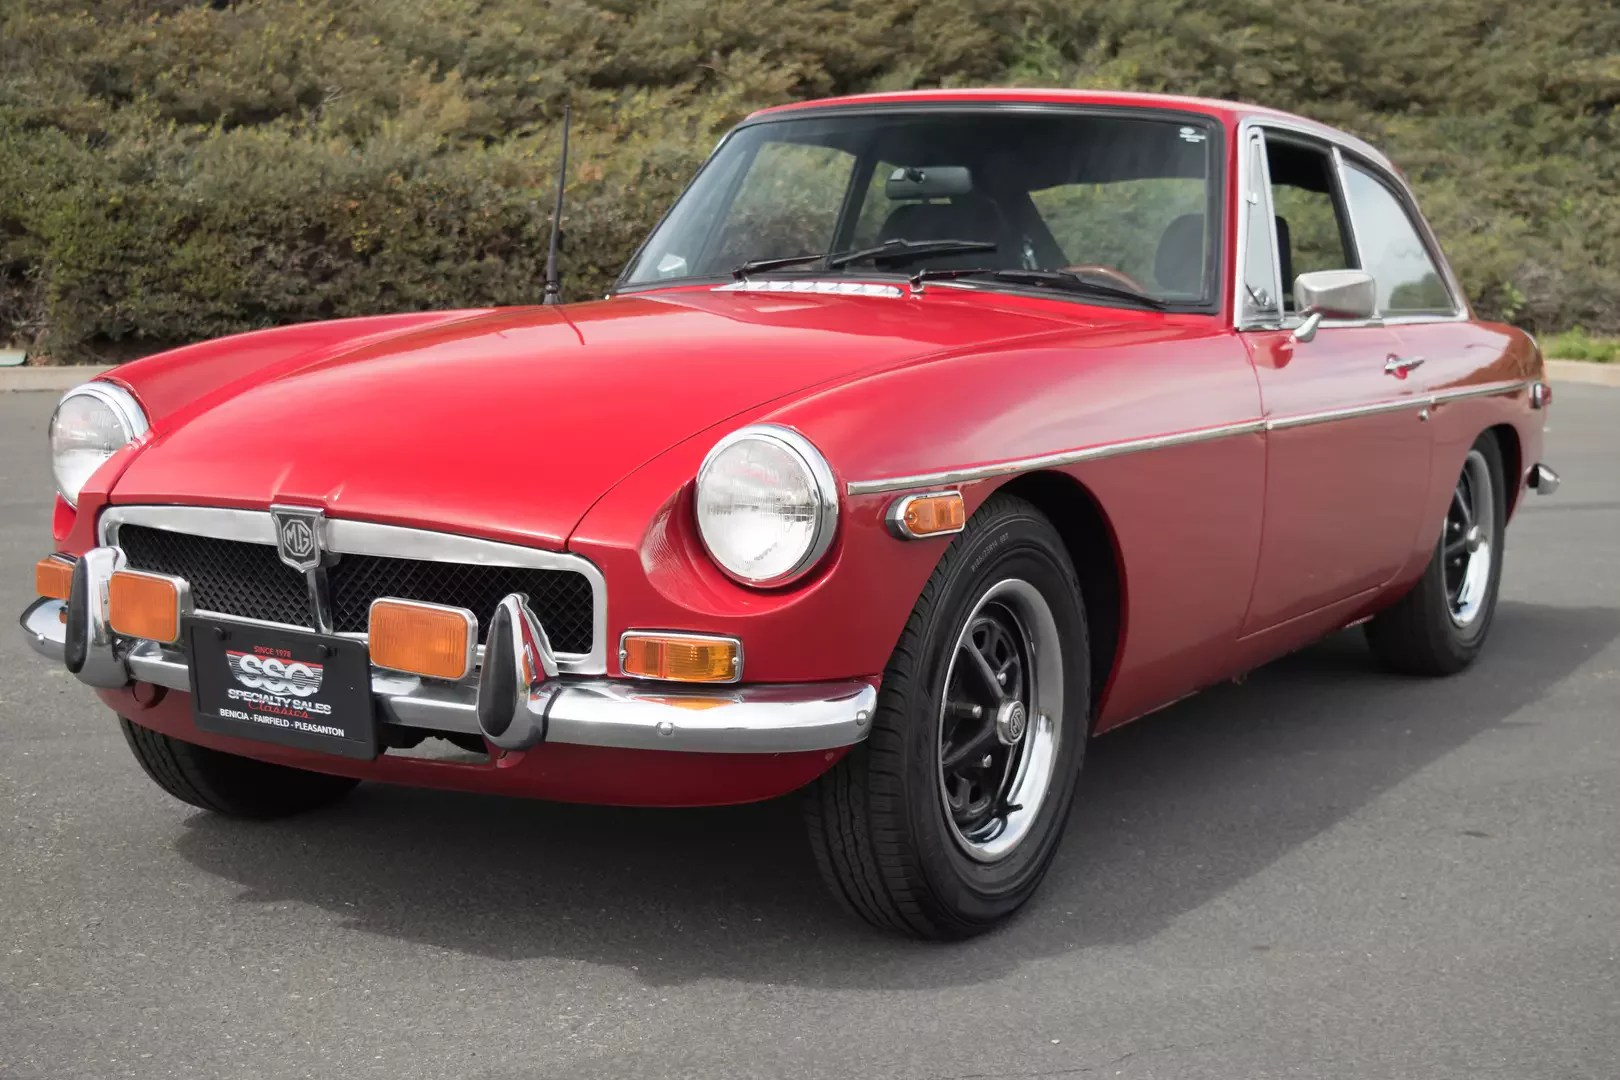 hight resolution of mg mgb classics for sale on autotraderrhclassicsautotrader 74 mgb wire harness at mywebline de